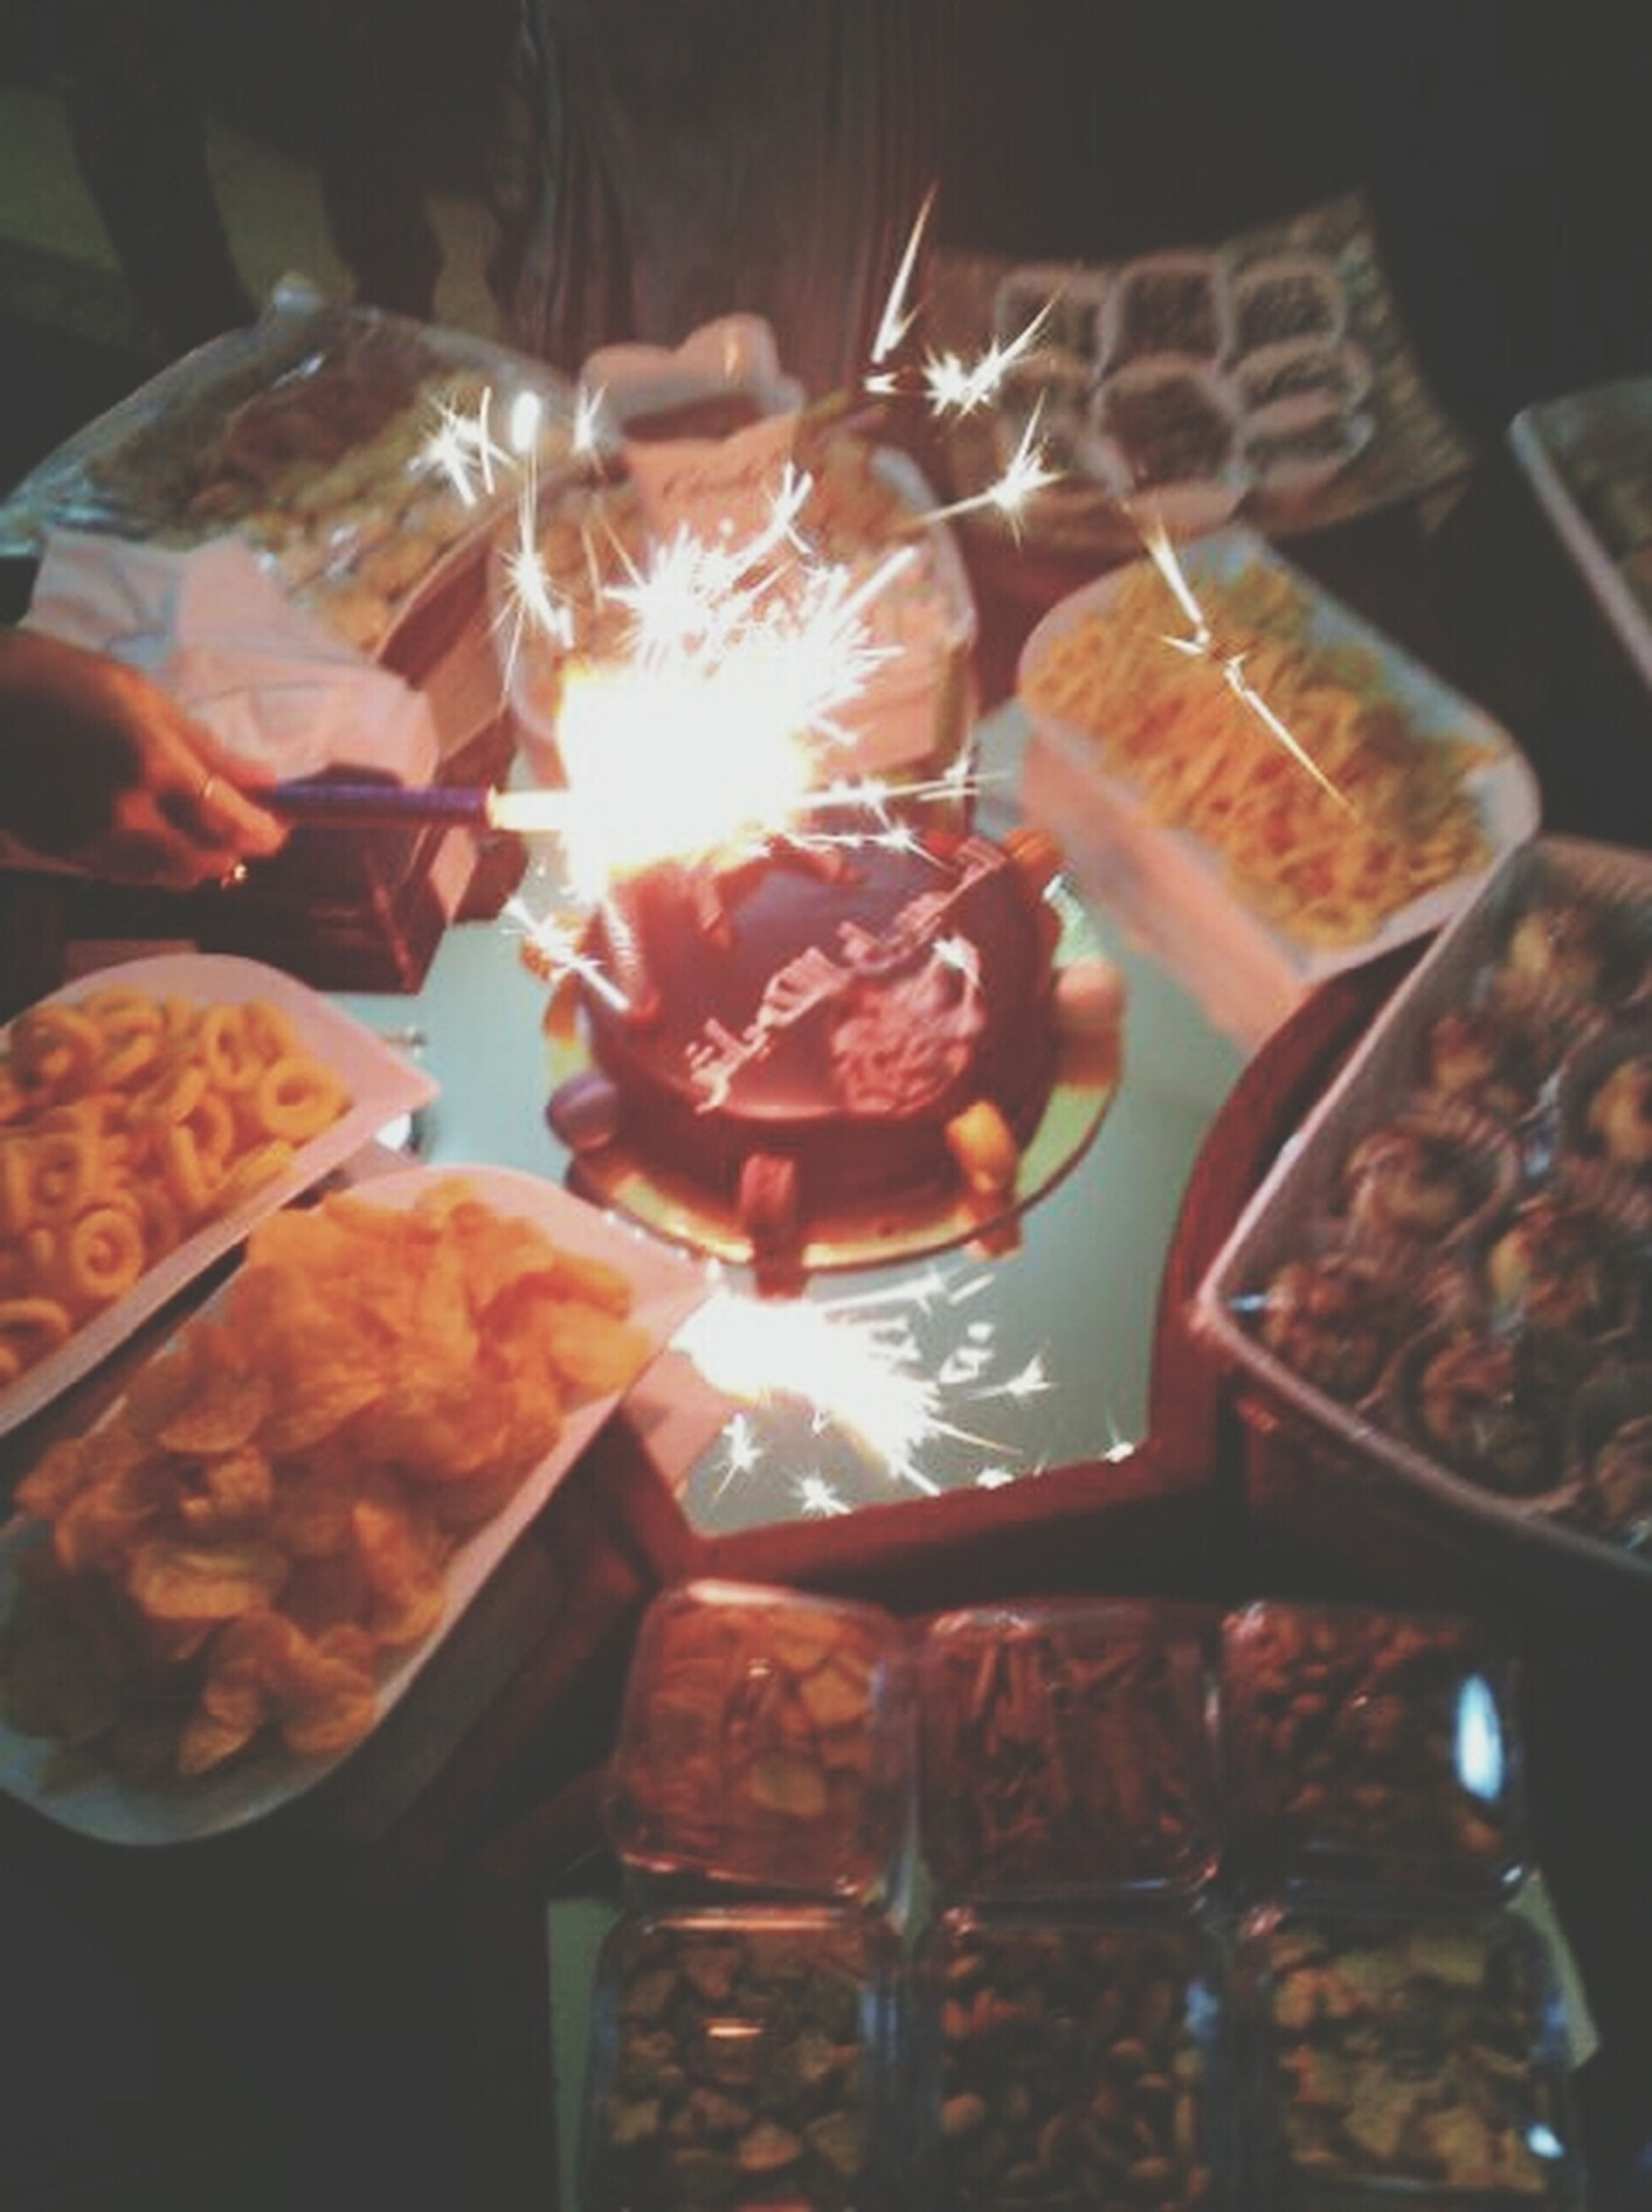 food and drink, food, indoors, freshness, sweet food, ready-to-eat, indulgence, unhealthy eating, close-up, dessert, flame, burning, heat - temperature, still life, table, temptation, one person, fire - natural phenomenon, person